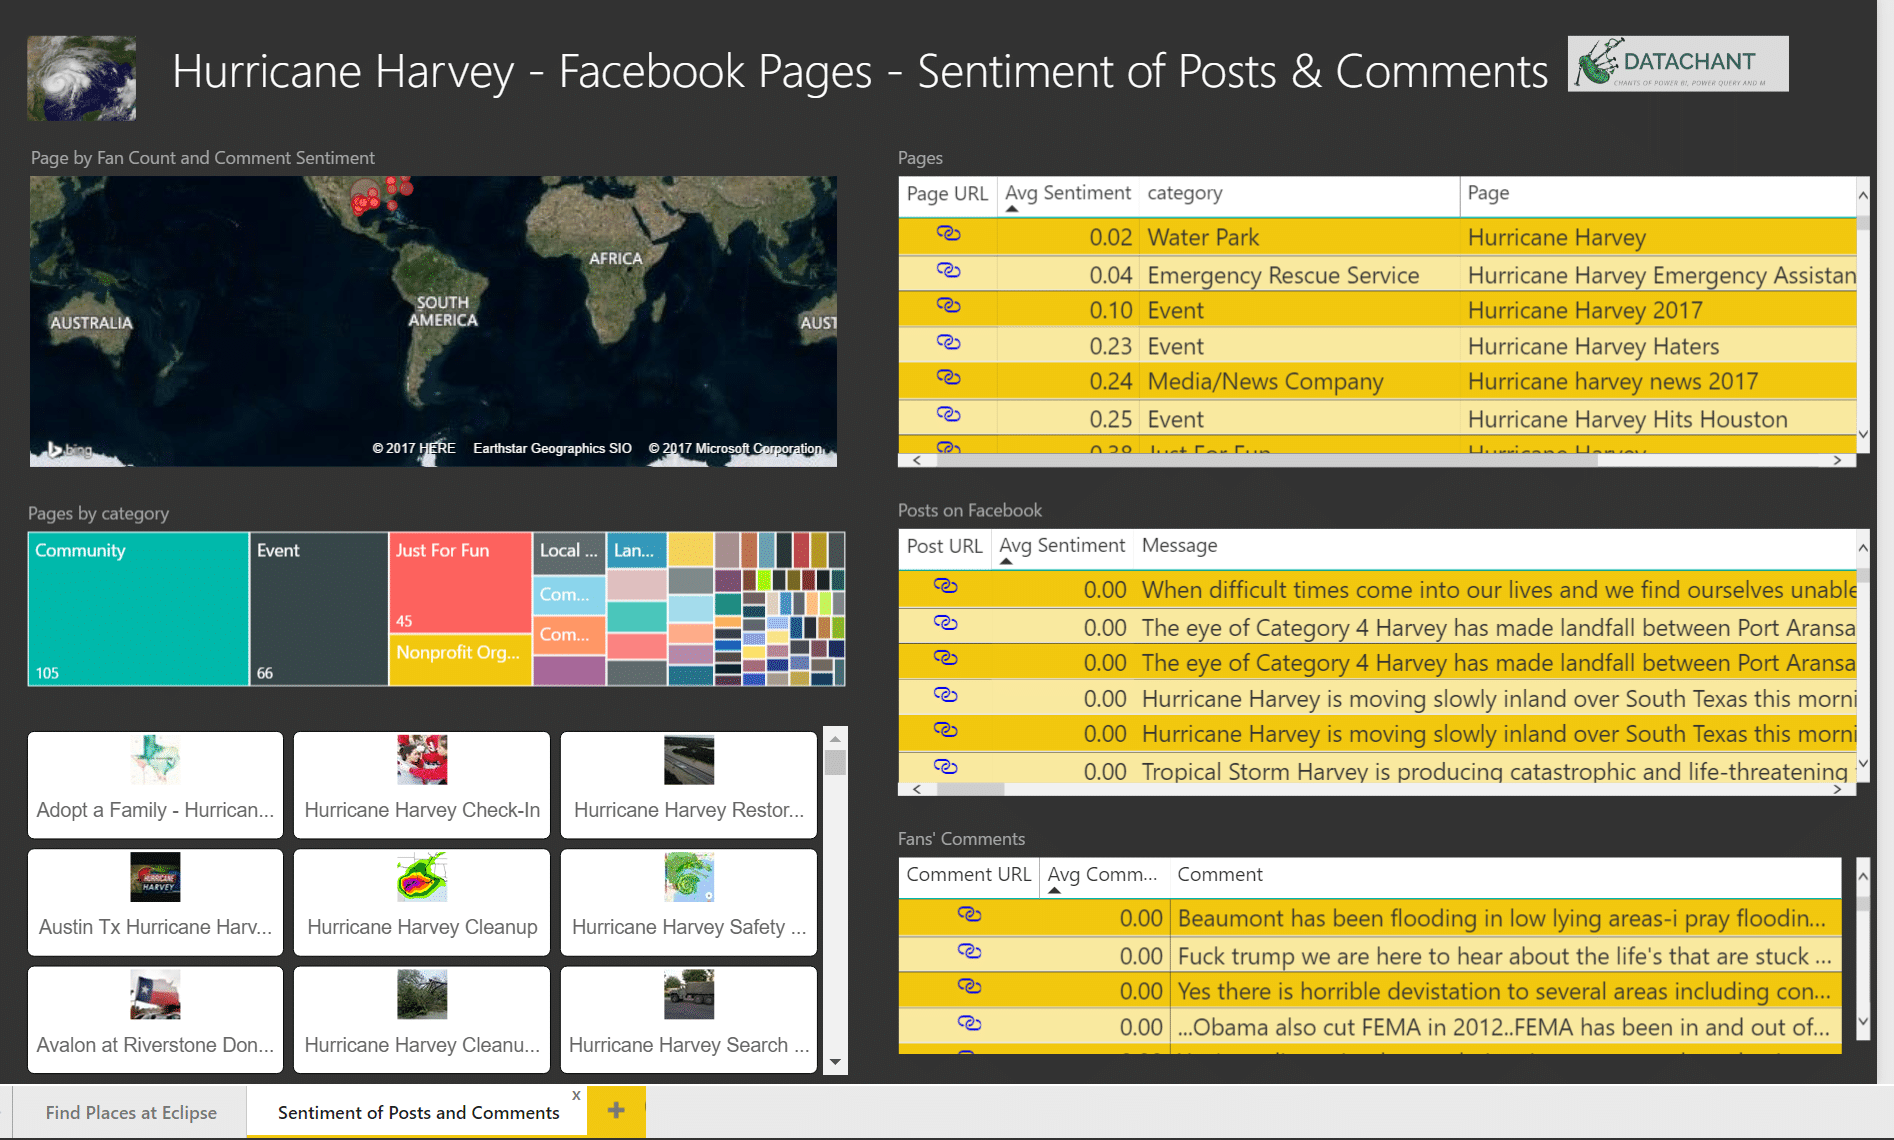 Hurricane Harvey in Power BI - Sentiment Analysis